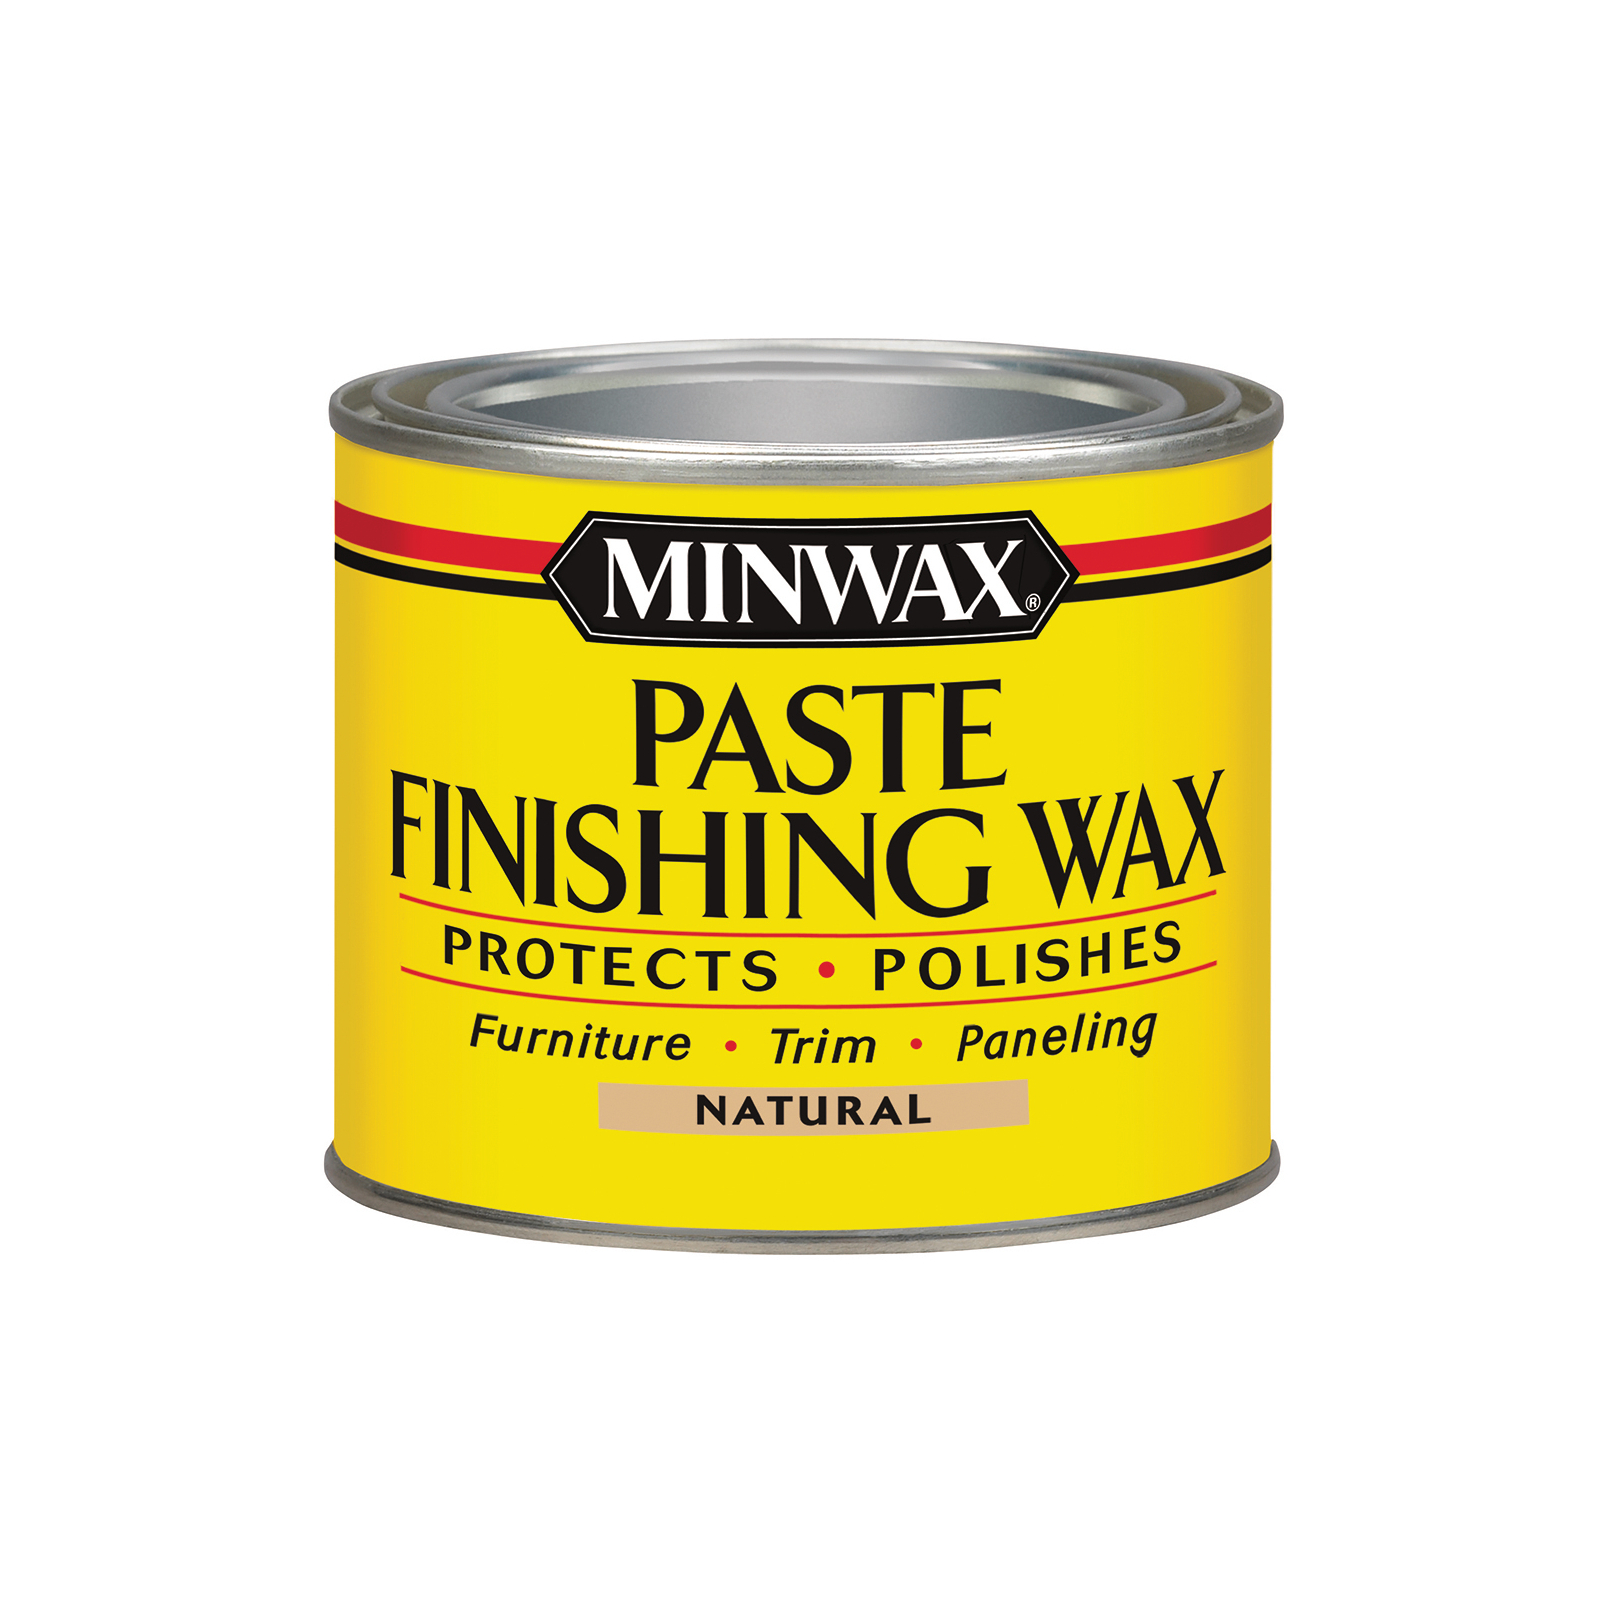 Minwax® Paste Finishing Wax Natural, 1-Lb